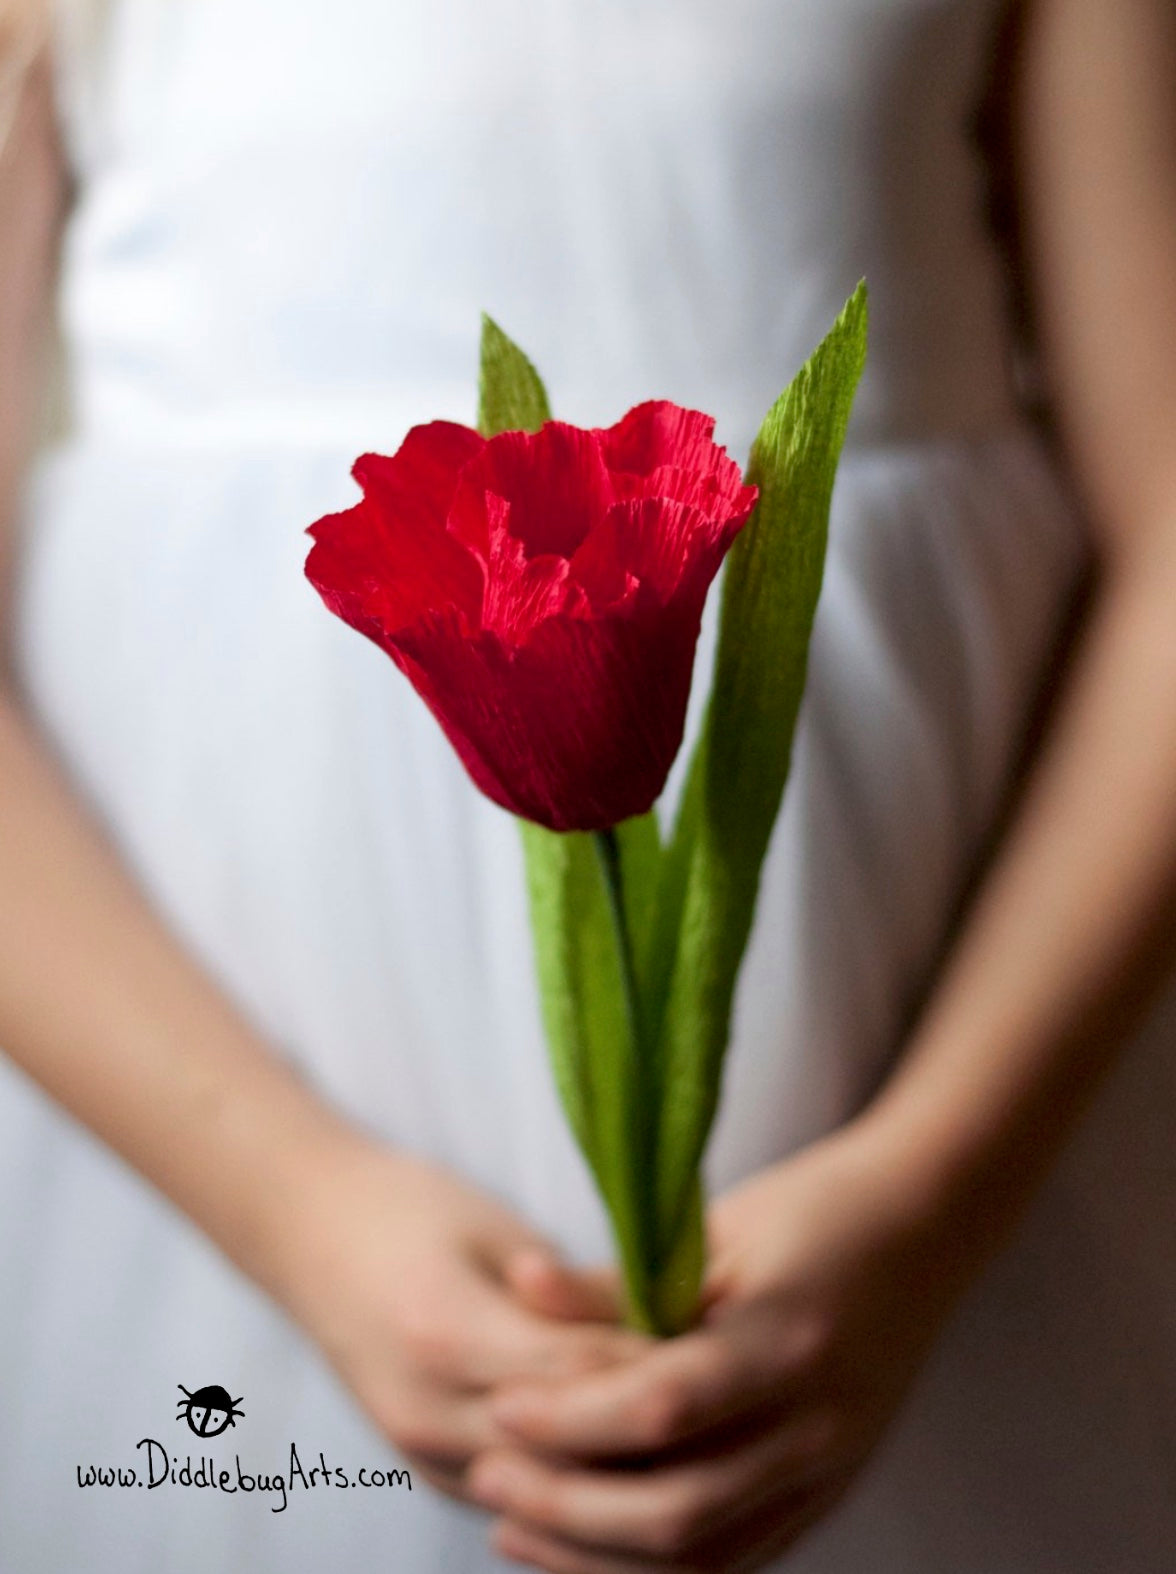 red crepe paper tulip held by a young girl